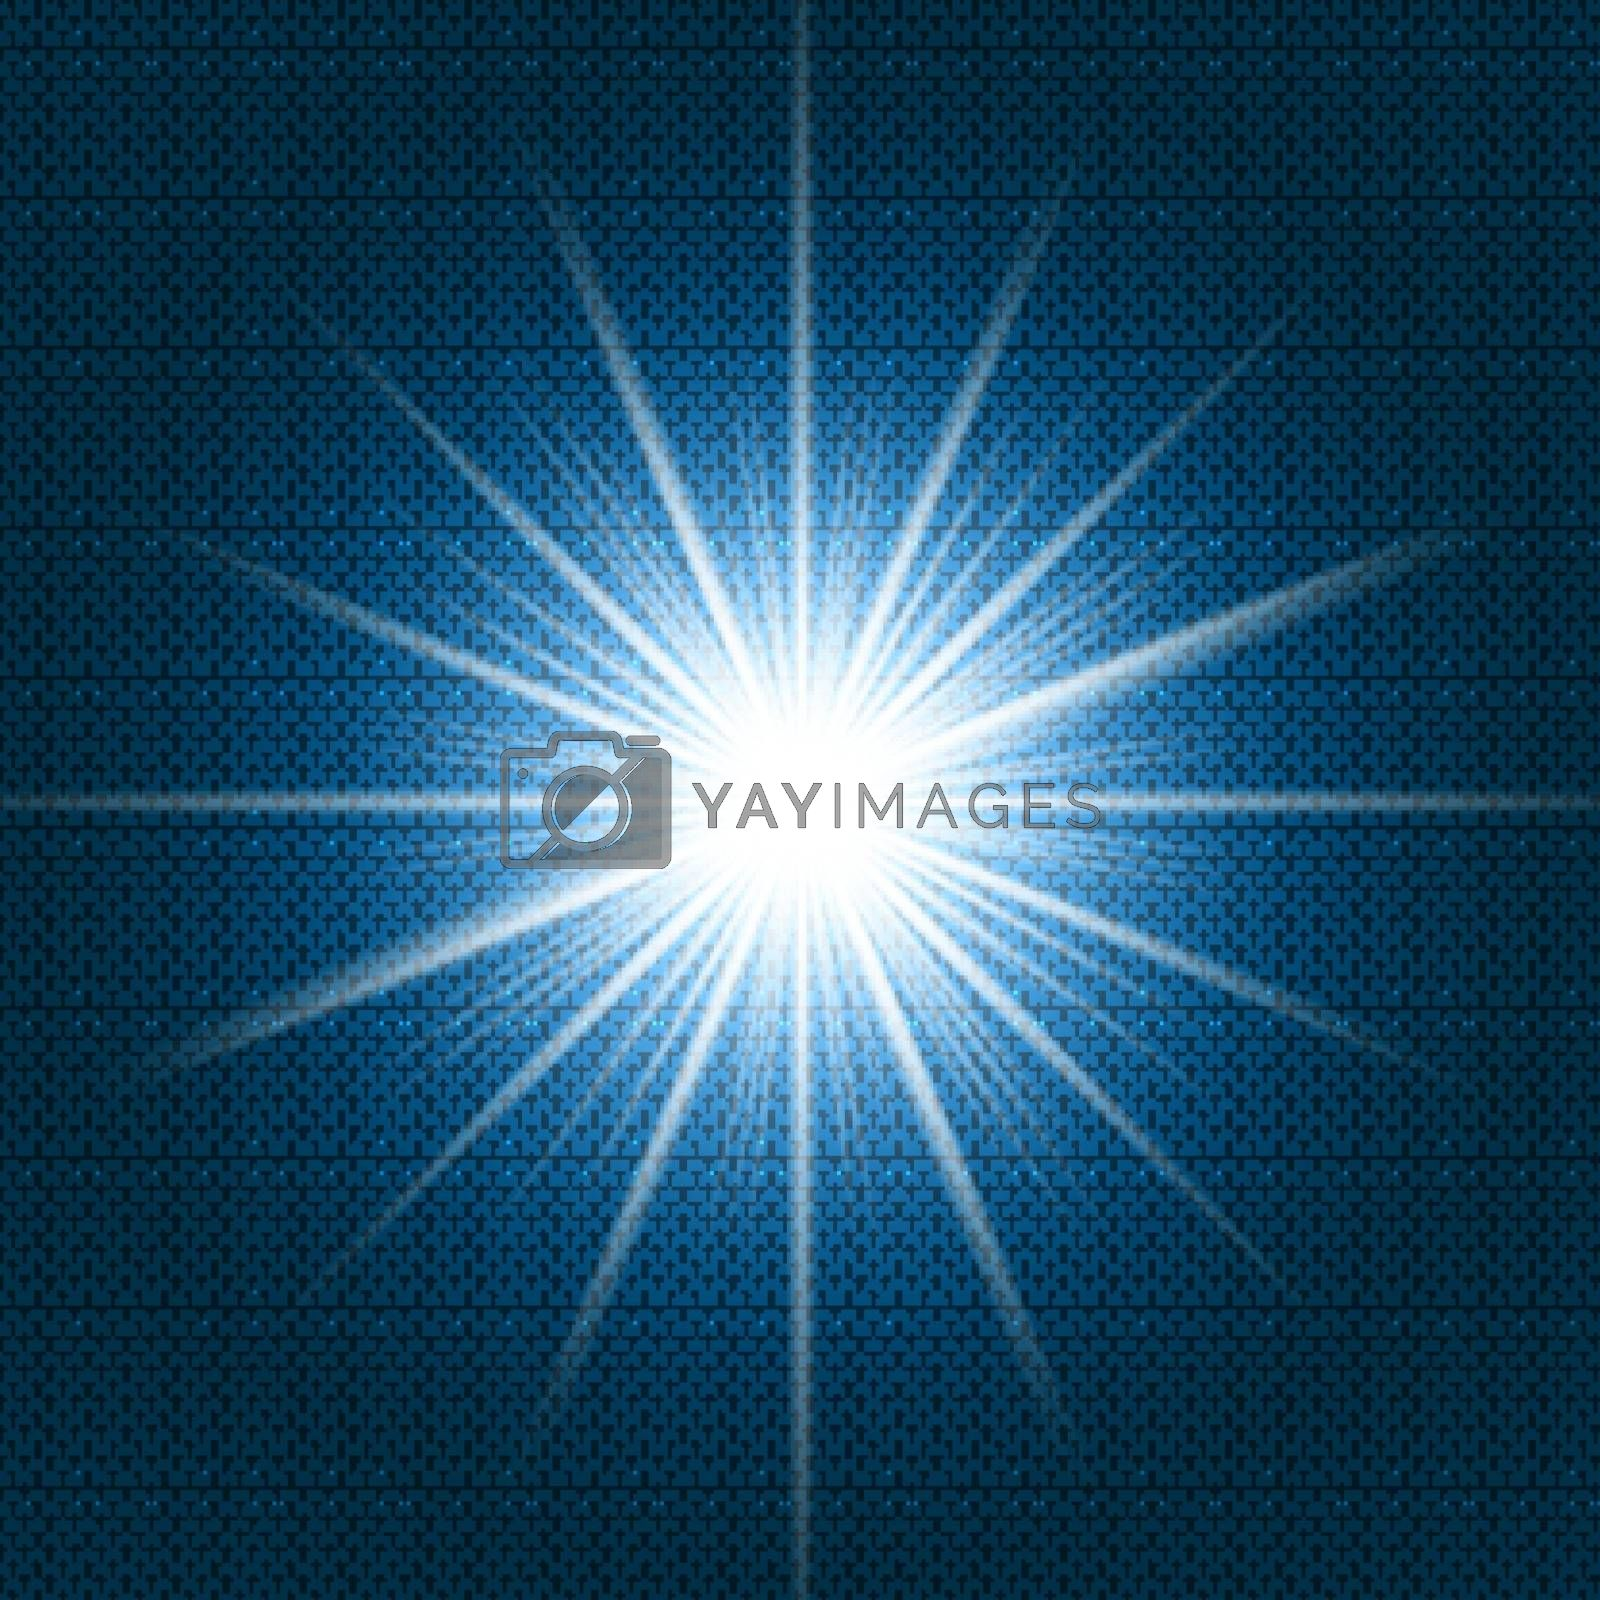 Starlight Shining flare with rays on dark blue gradient background and chevron pattern texture. Vector illustration